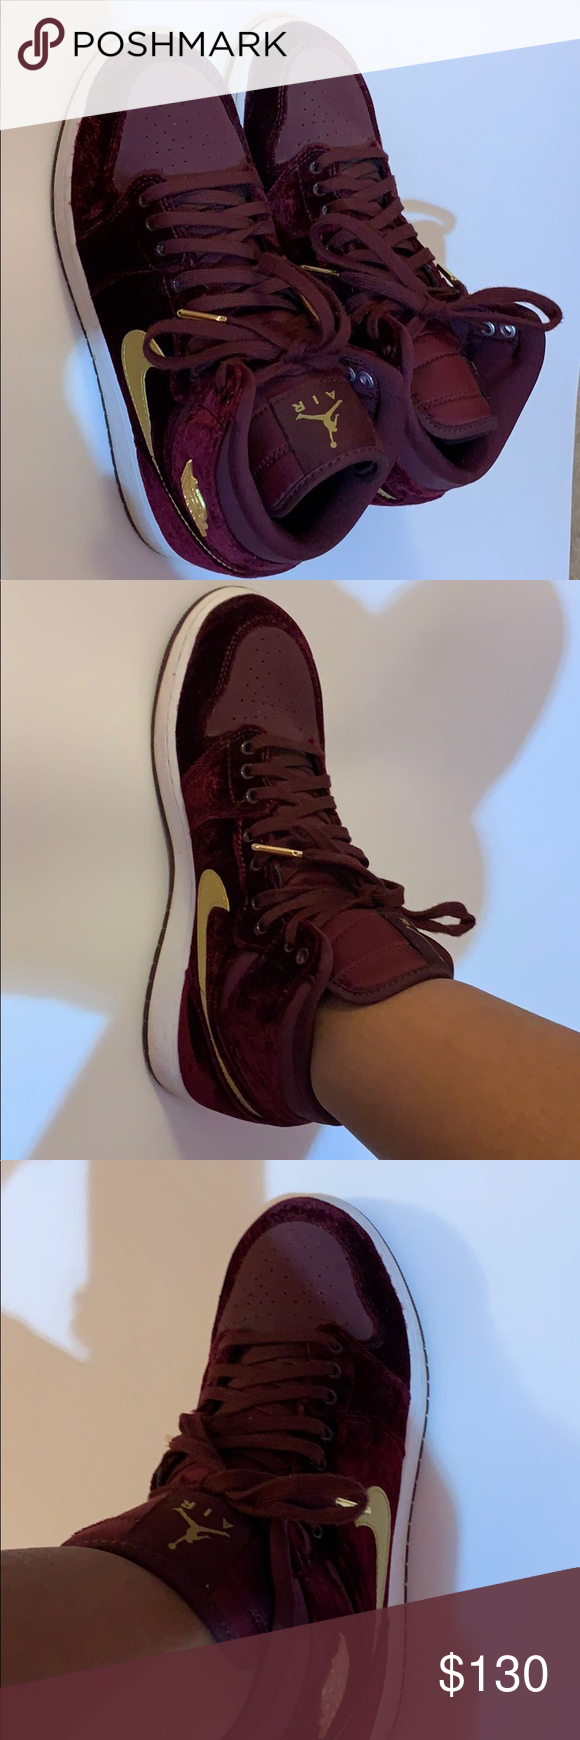 "Air Jordan 1 High Velvet ""Night Maroon"" These retro sneakers are perfect with almost any outfit to really make a fashion statement! They are a size 7 in kids so a size 8.5 in women's and were gently used so they're still in good condition. Also, they were brought back to the public in 2016 for a limited time, but now they've been brought back again so get yours before they're gone again. Jordan Shoes Sneakers #airjordan1outfitwomen Air Jordan 1 High Velvet ""Night Maroon"" These re #airjordan1outfitwomen"